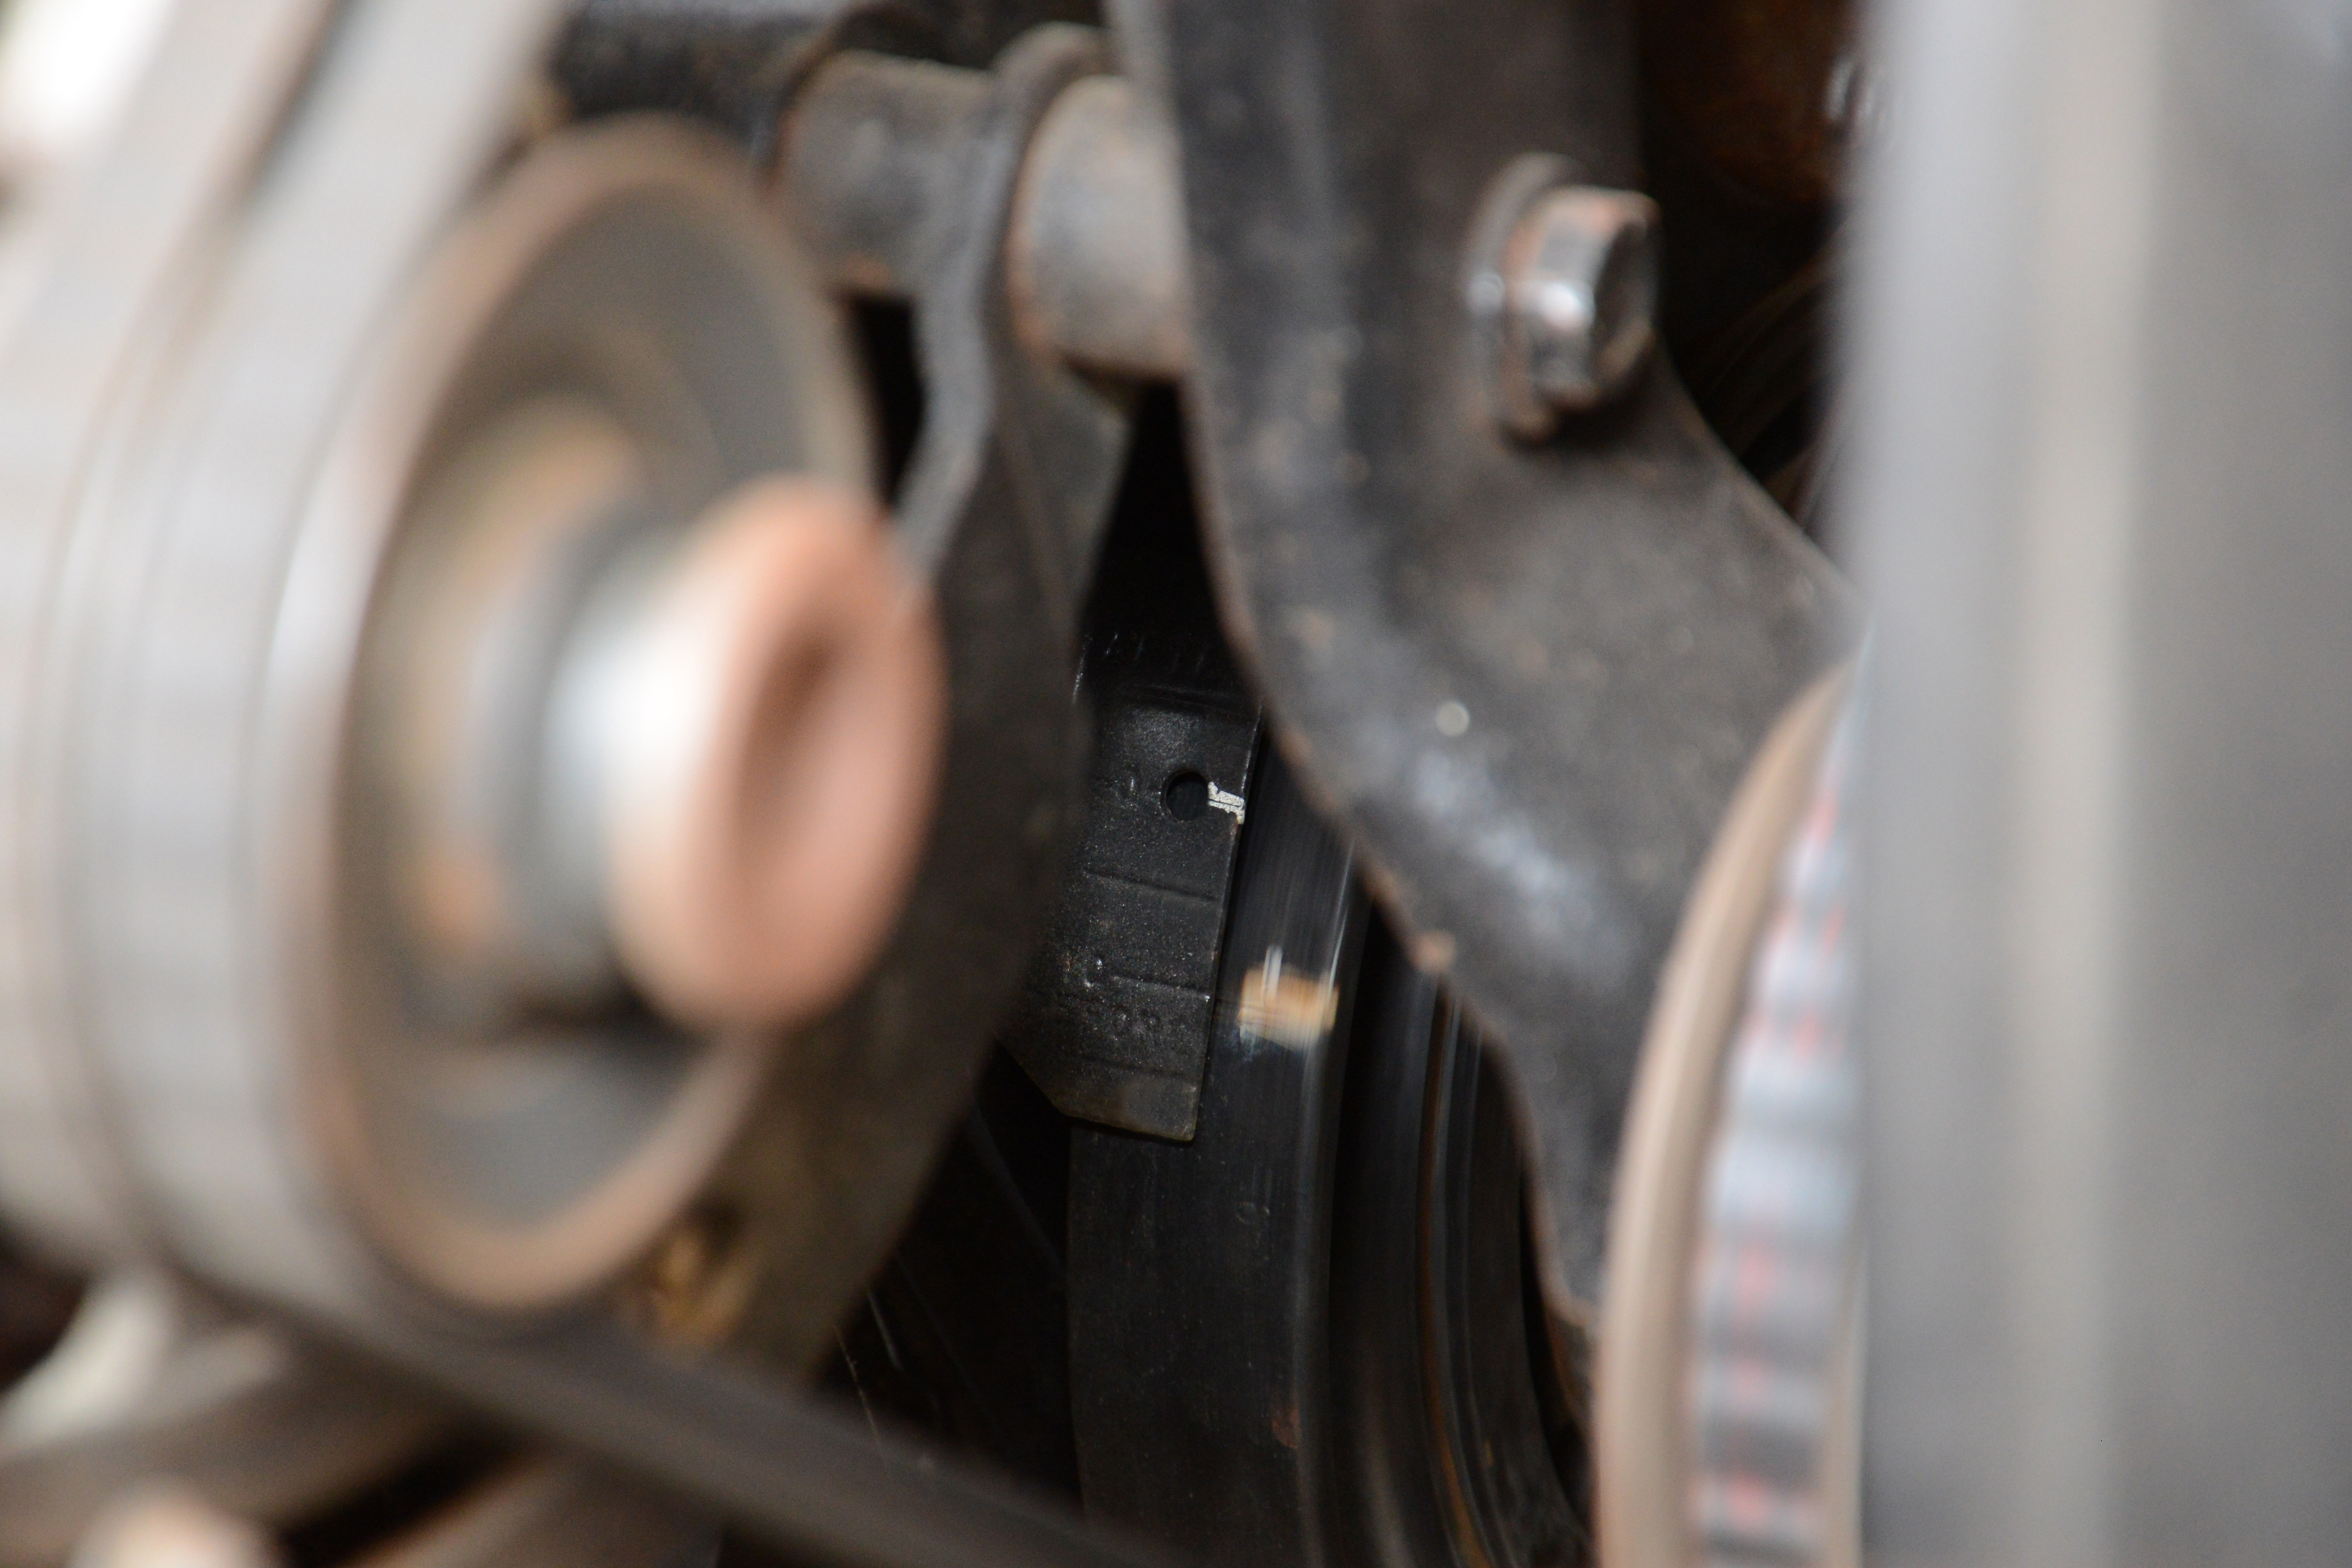 Ignition Timing_Image02 (0787)width=